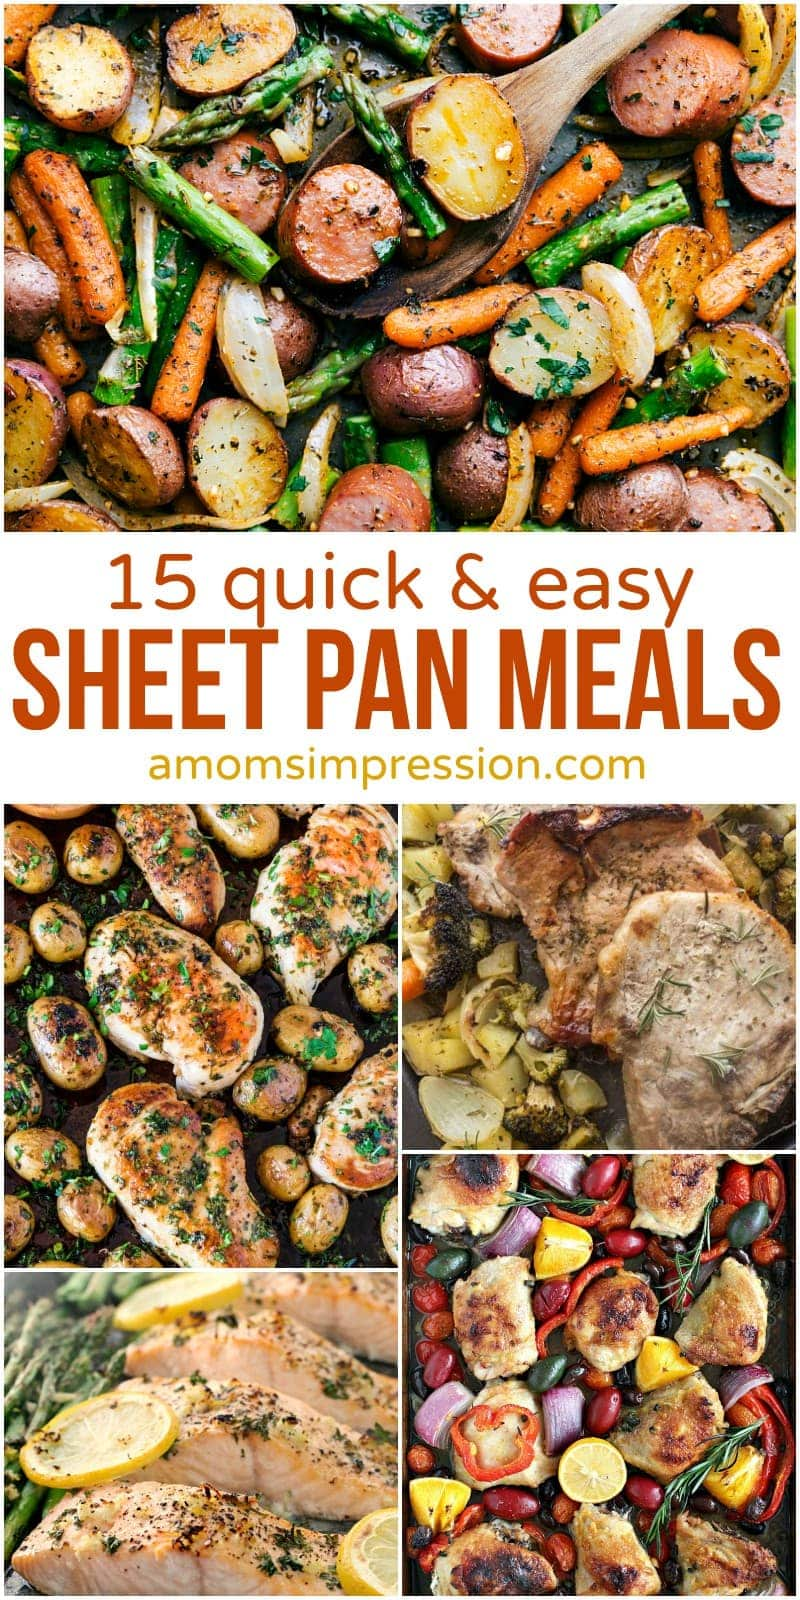 Clean up is a breeze when you make all your healthy meals on one sheet pan. Simplify your dinner with these quick and easy sheet pan recipes for chicken, beef, shrimp, sausage, and vegetables.